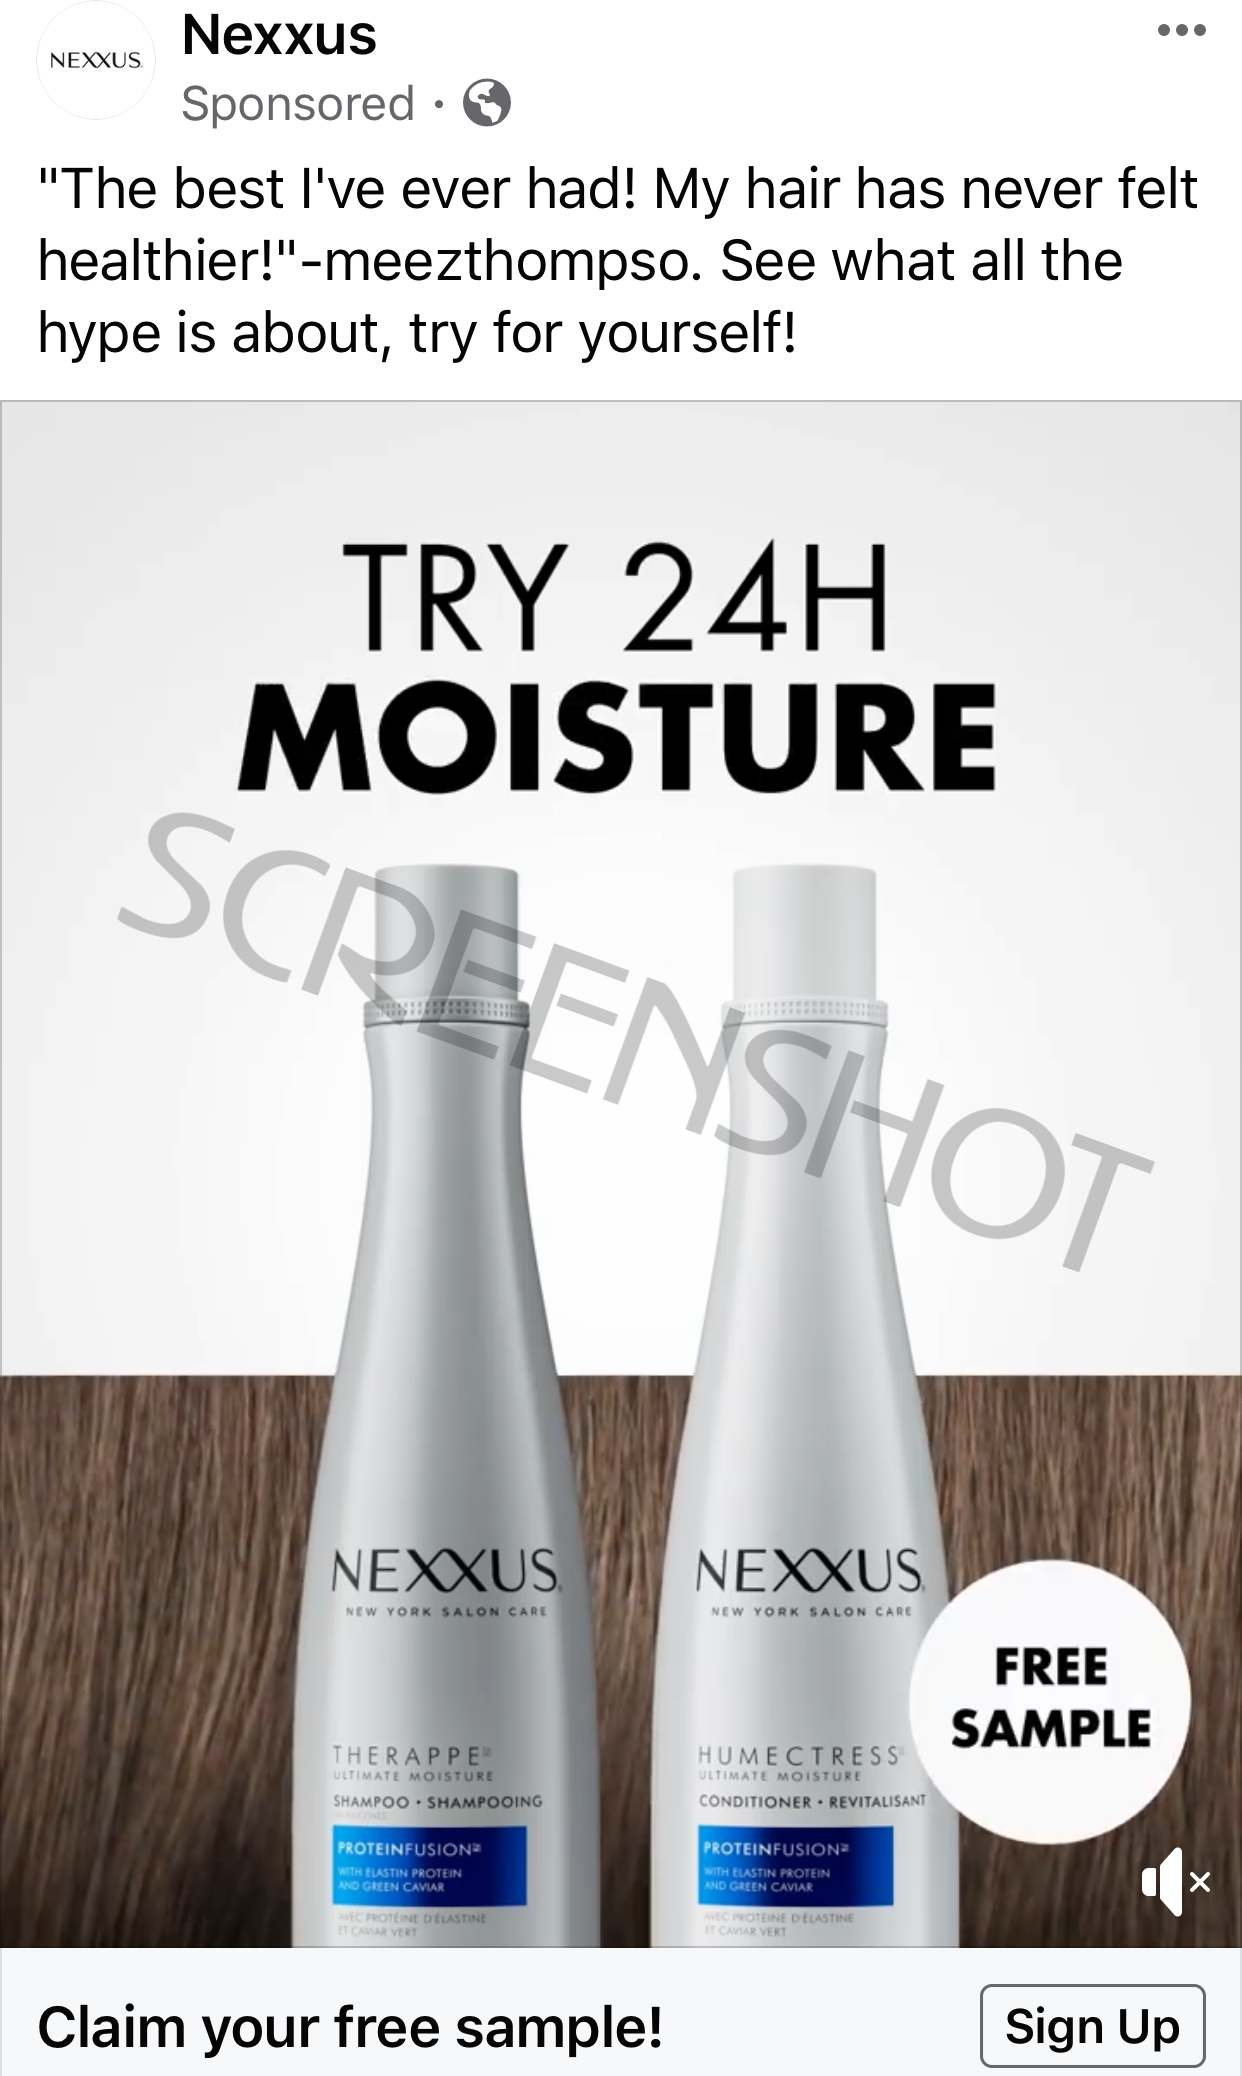 Screenshot of Sponsored Ad for Free NEXXUS Shampoo and Conditioner Samples